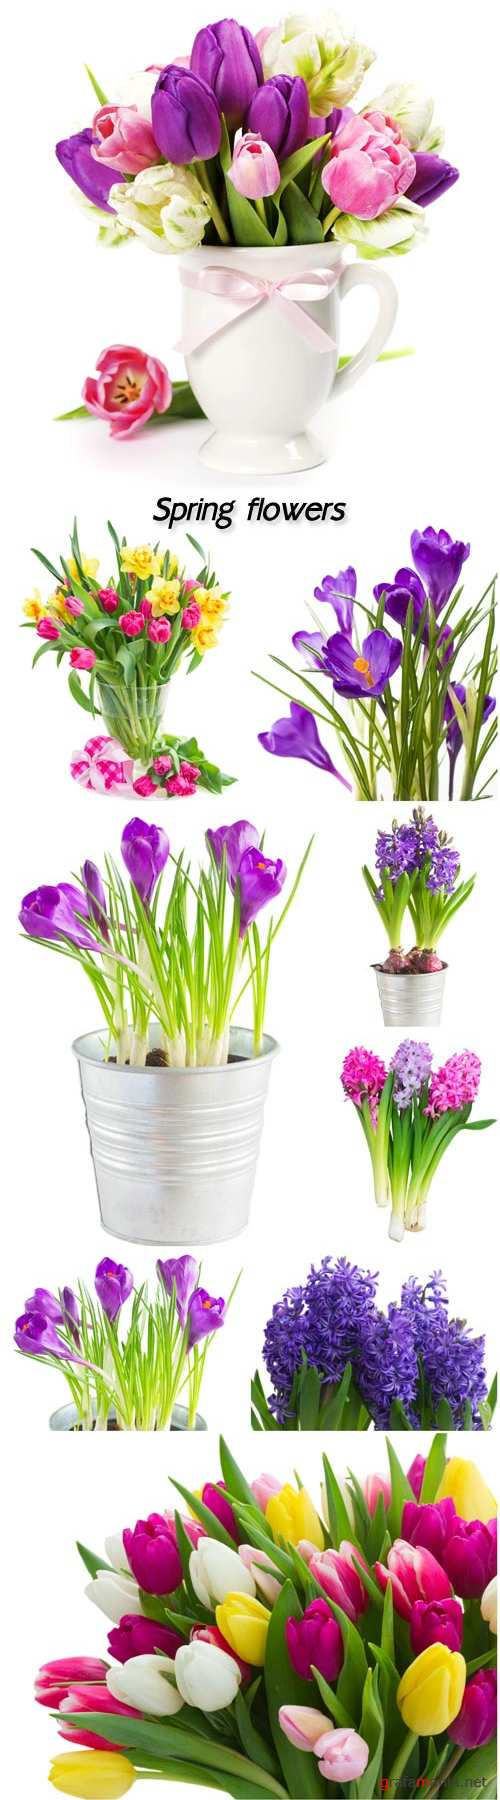 Spring flowers, hyacinths, crocuses and tulips